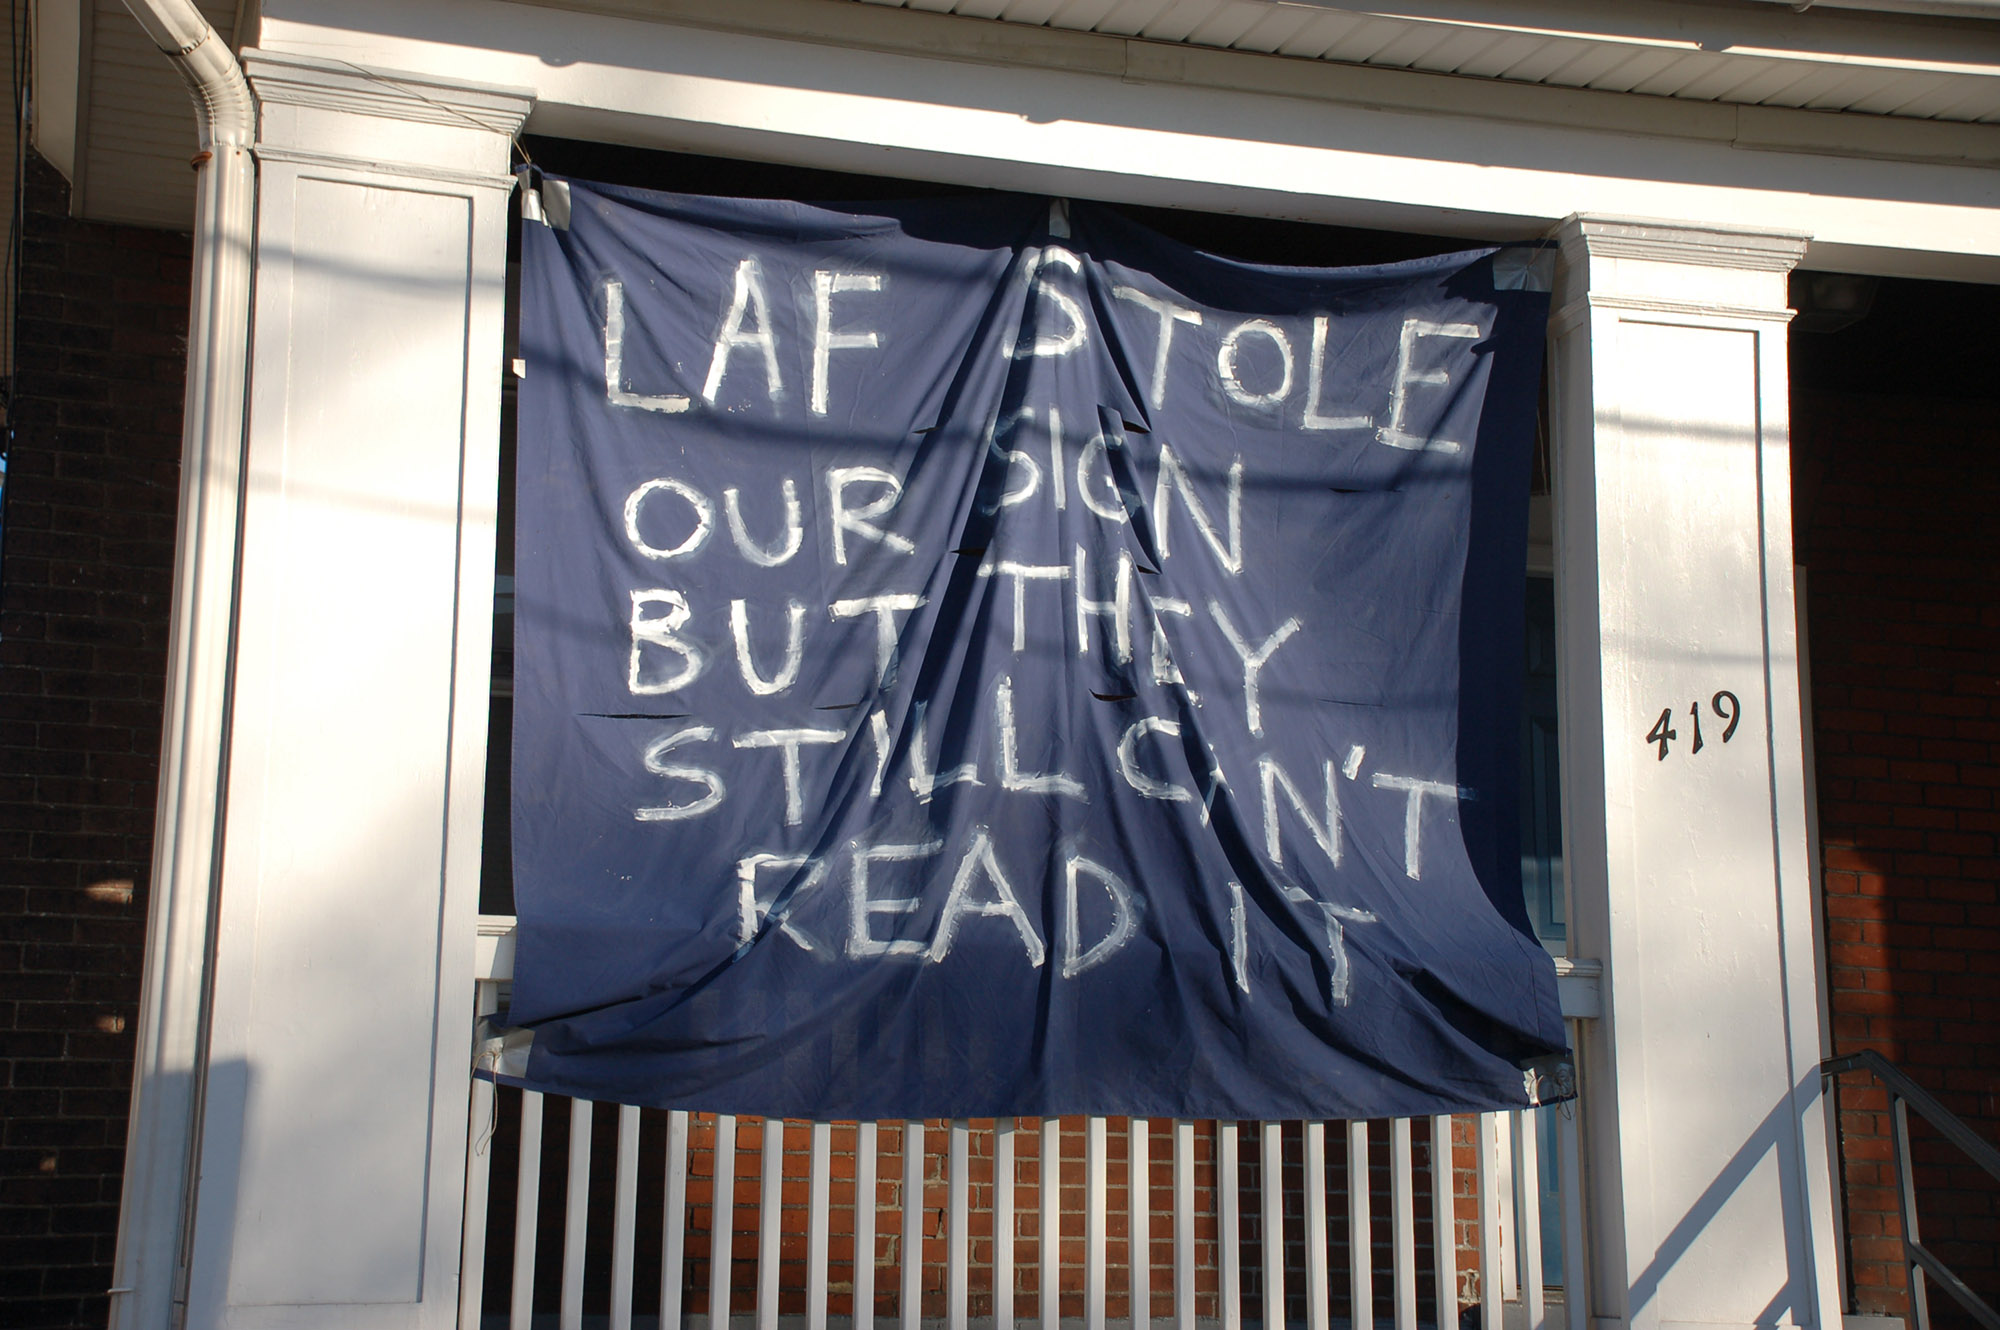 "A sign reading ""Laf stole our sign but they still can't read it"" hangs on a house on Webster Street on Nov. 18, 2016. The house's original sign read ""Lafayette can't read this sign."" (Gaby Morera/B&W Staff)"